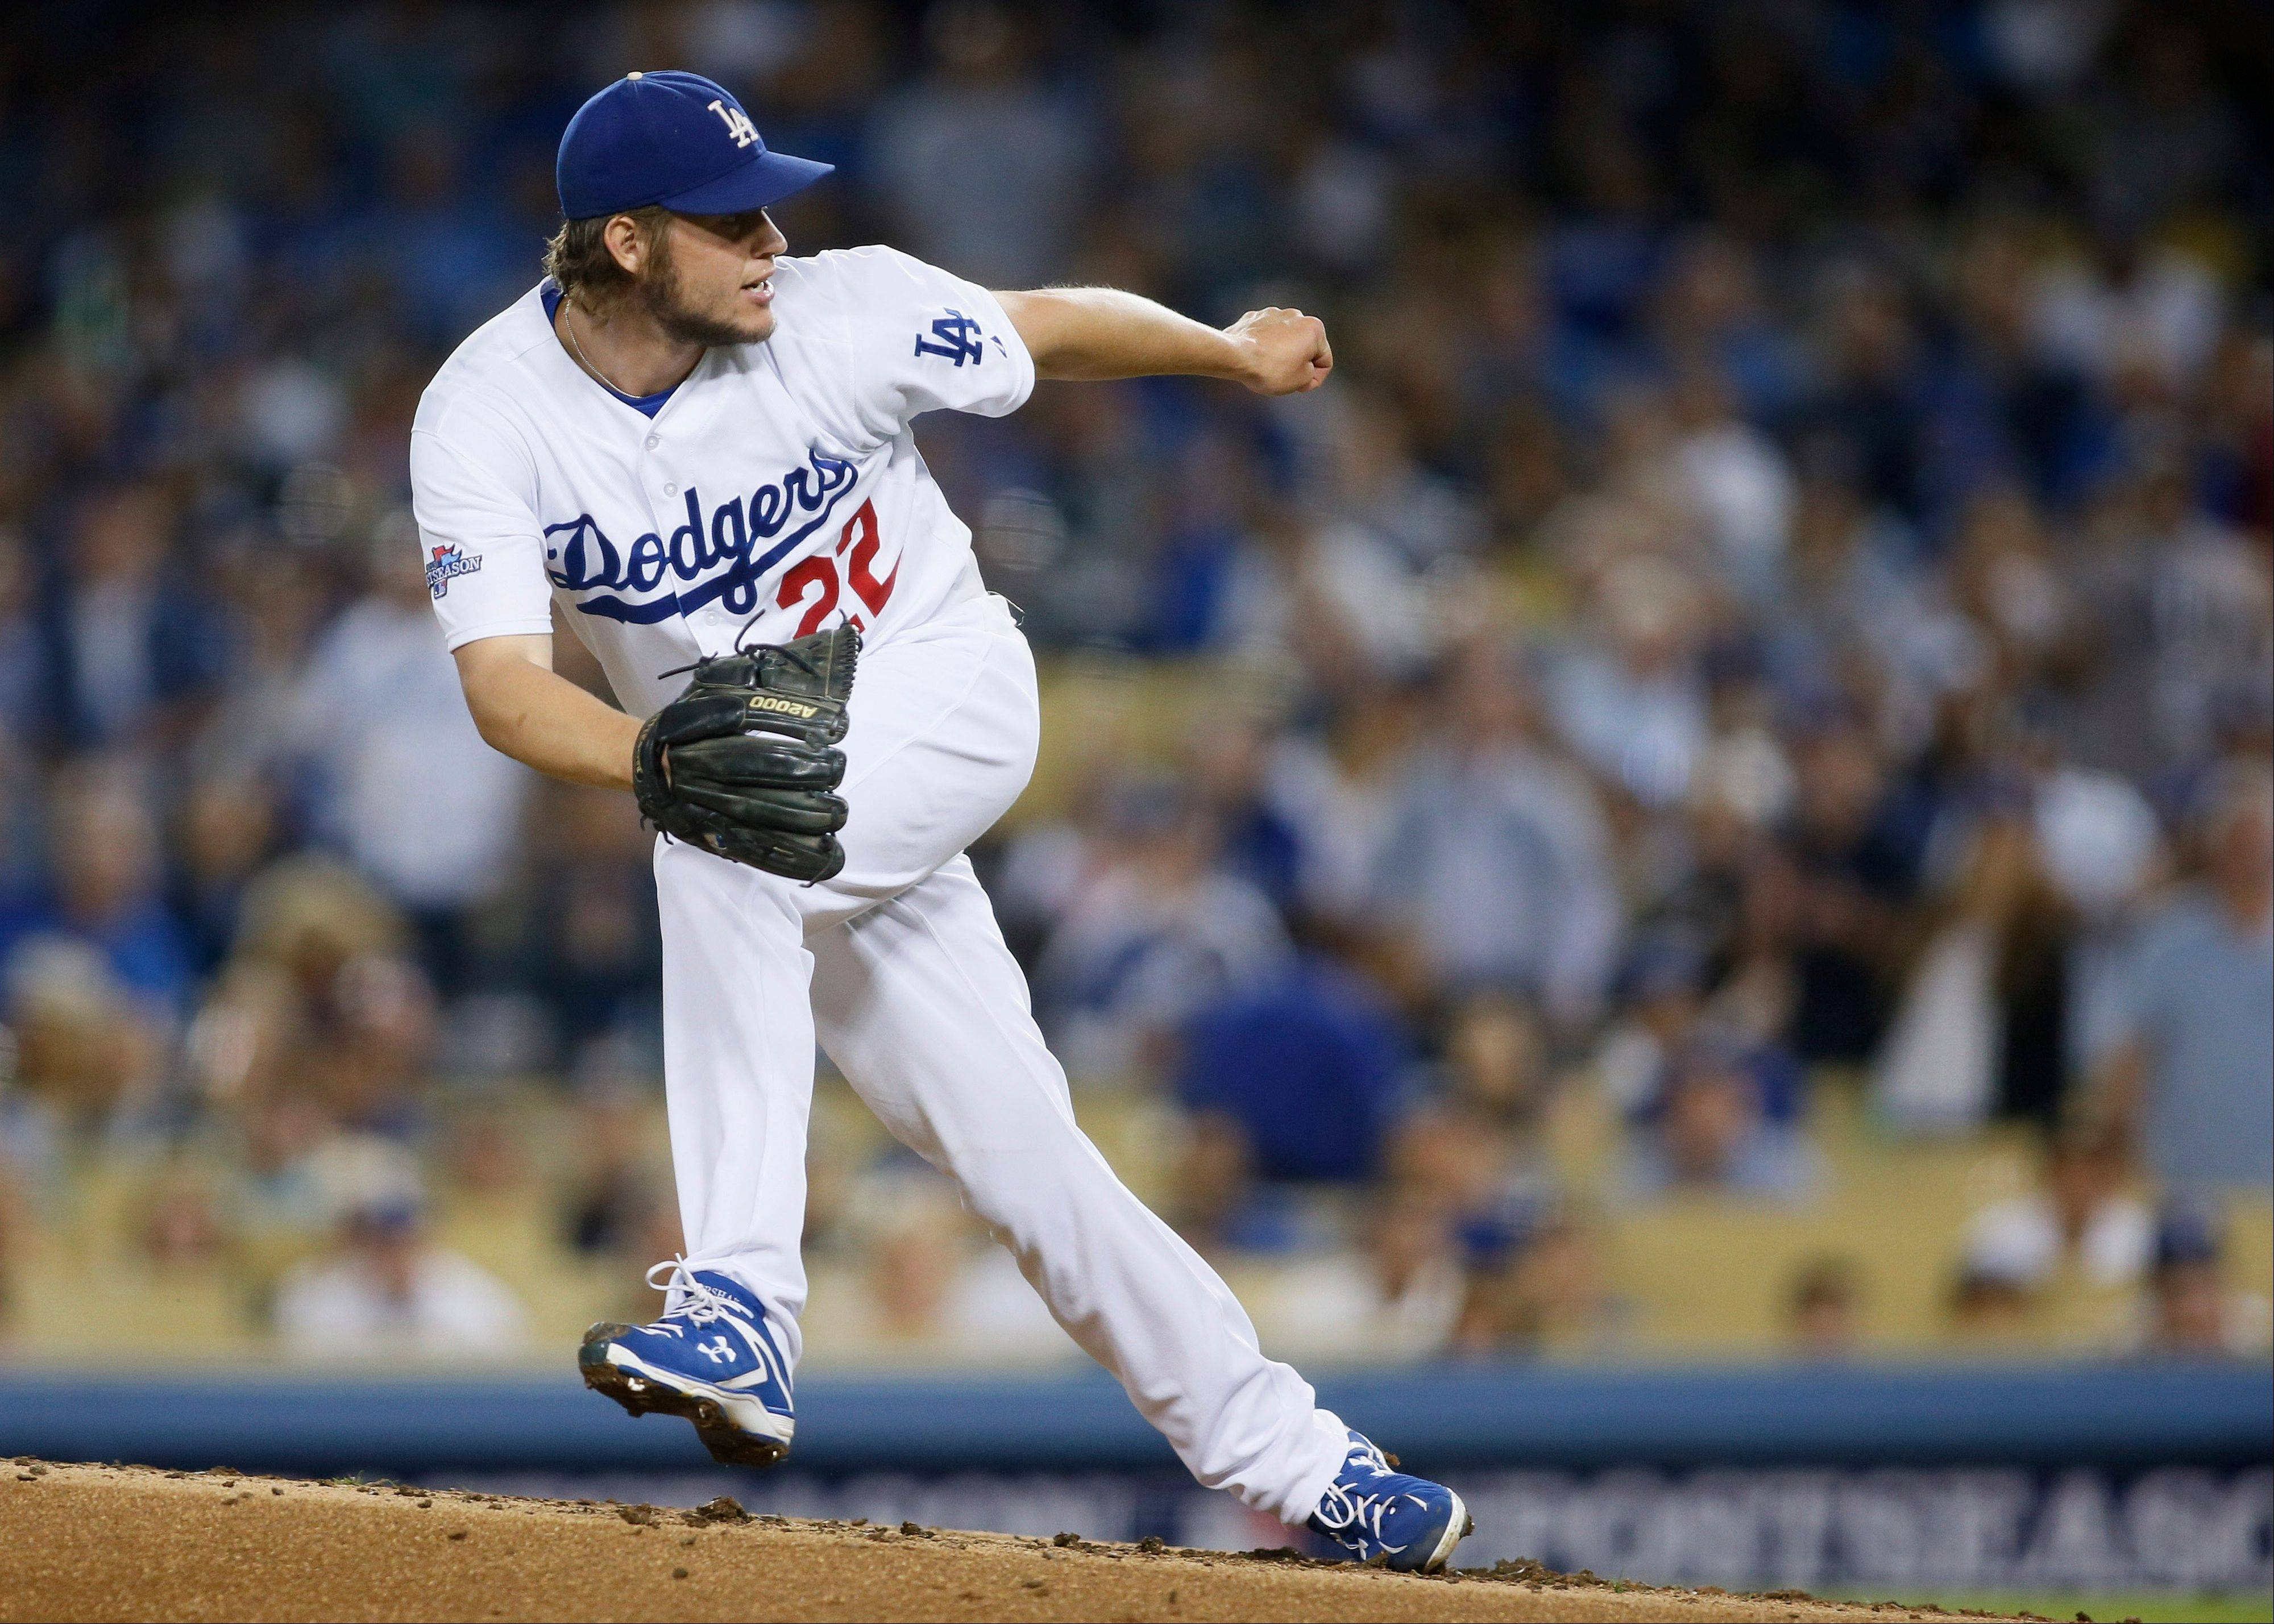 Dodgers starter Clayton Kershaw follows through on a pitch in the third inning of Game 4 Monday night.